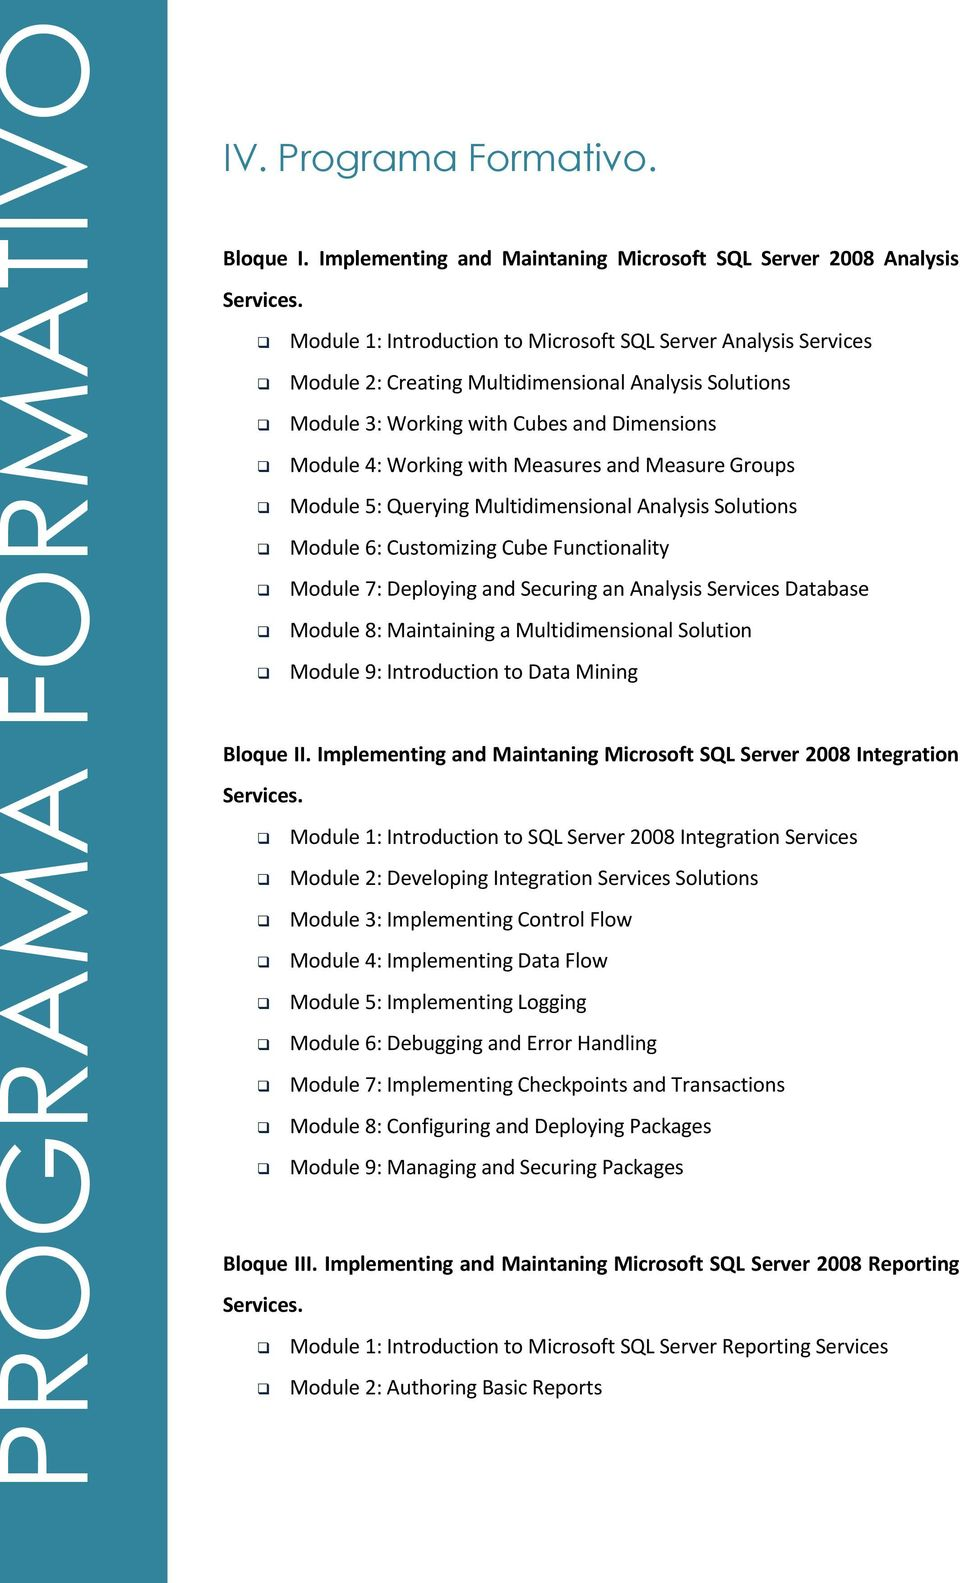 Measure Groups Module 5: Querying Multidimensional Analysis Solutions Module 6: Customizing Cube Functionality Module 7: Deploying and Securing an Analysis Services Database Module 8: Maintaining a